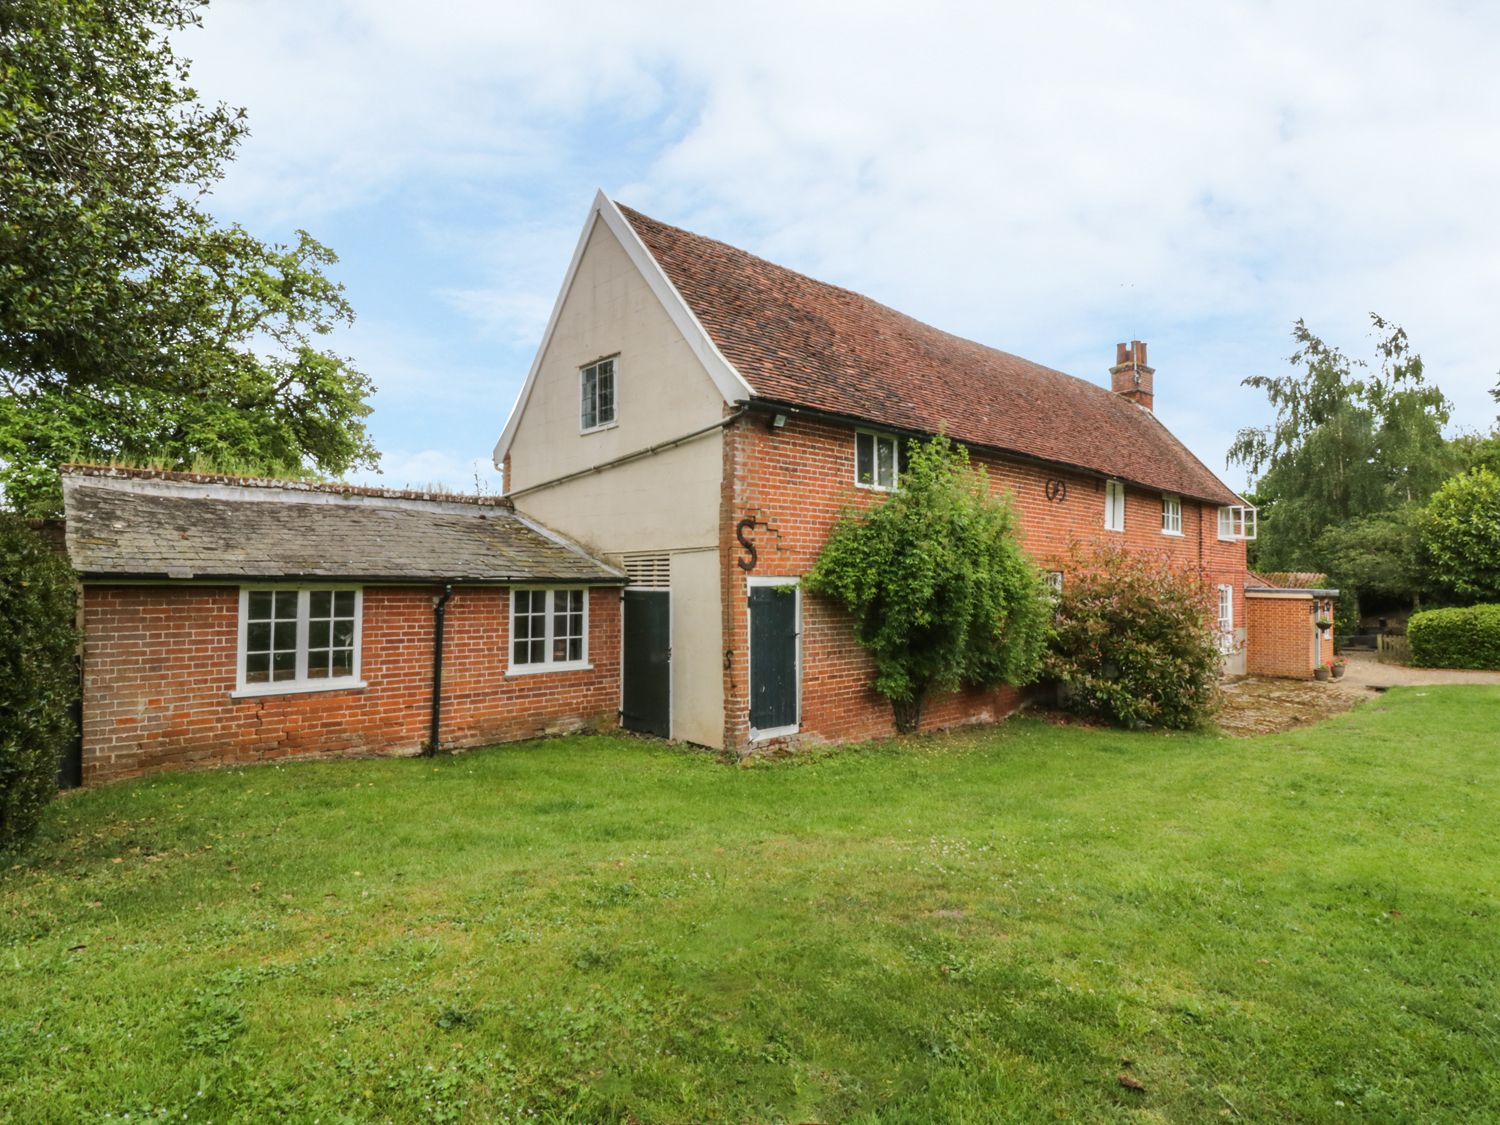 Holiday Cottages in Suffolk: Gardener's Cottage, Hadleigh | sykescottages.co.uk